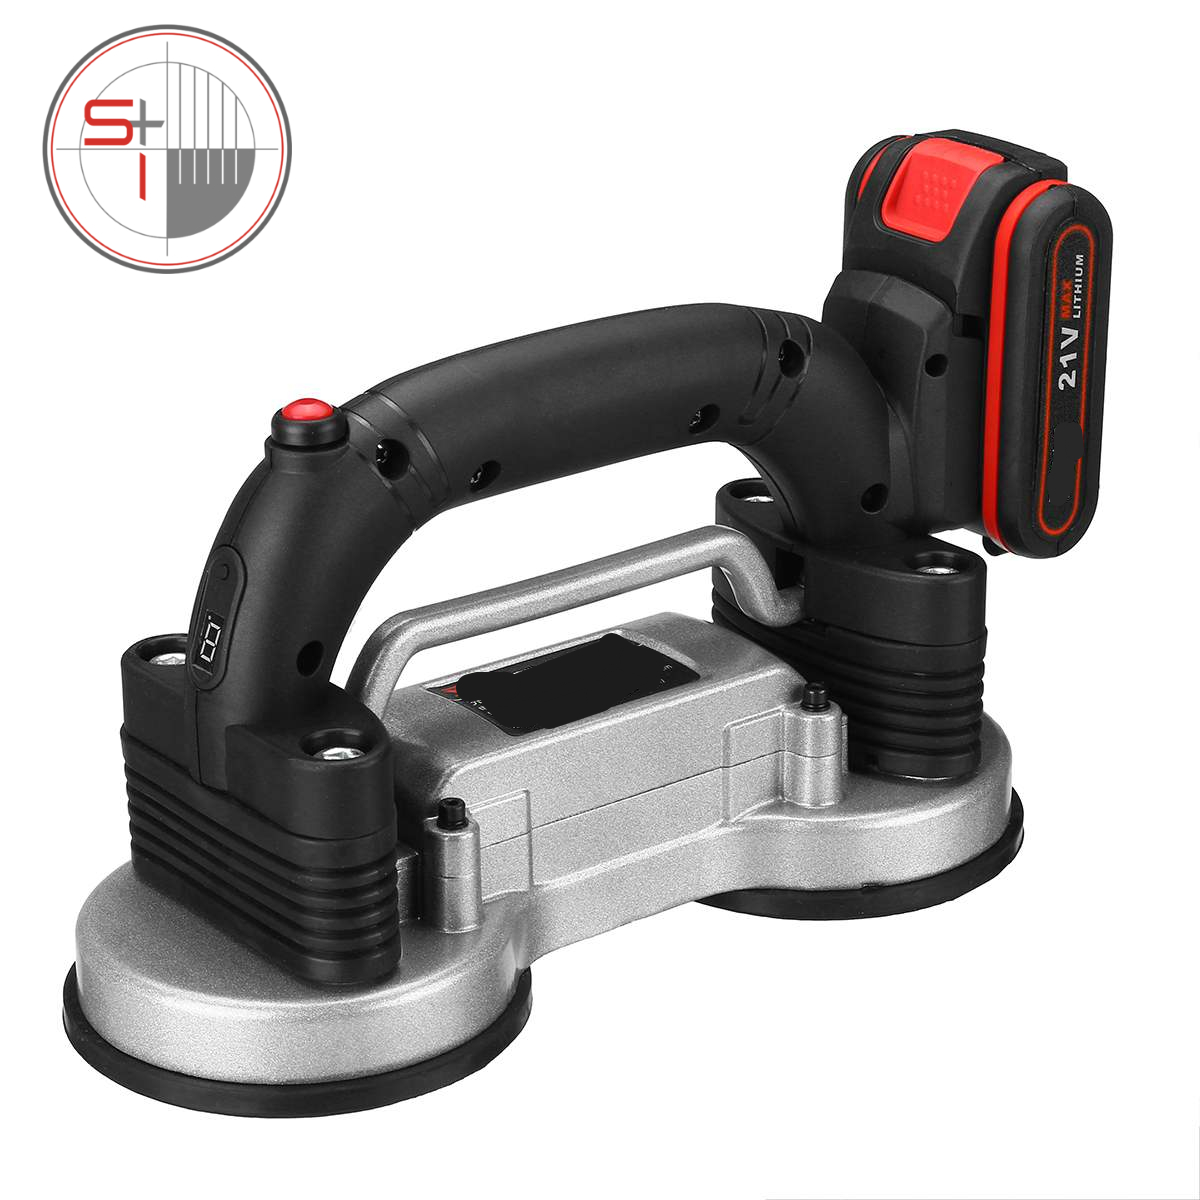 Tiling Machine, Vibrator, Suction Cup, Automatic Leveling Tool With Battery